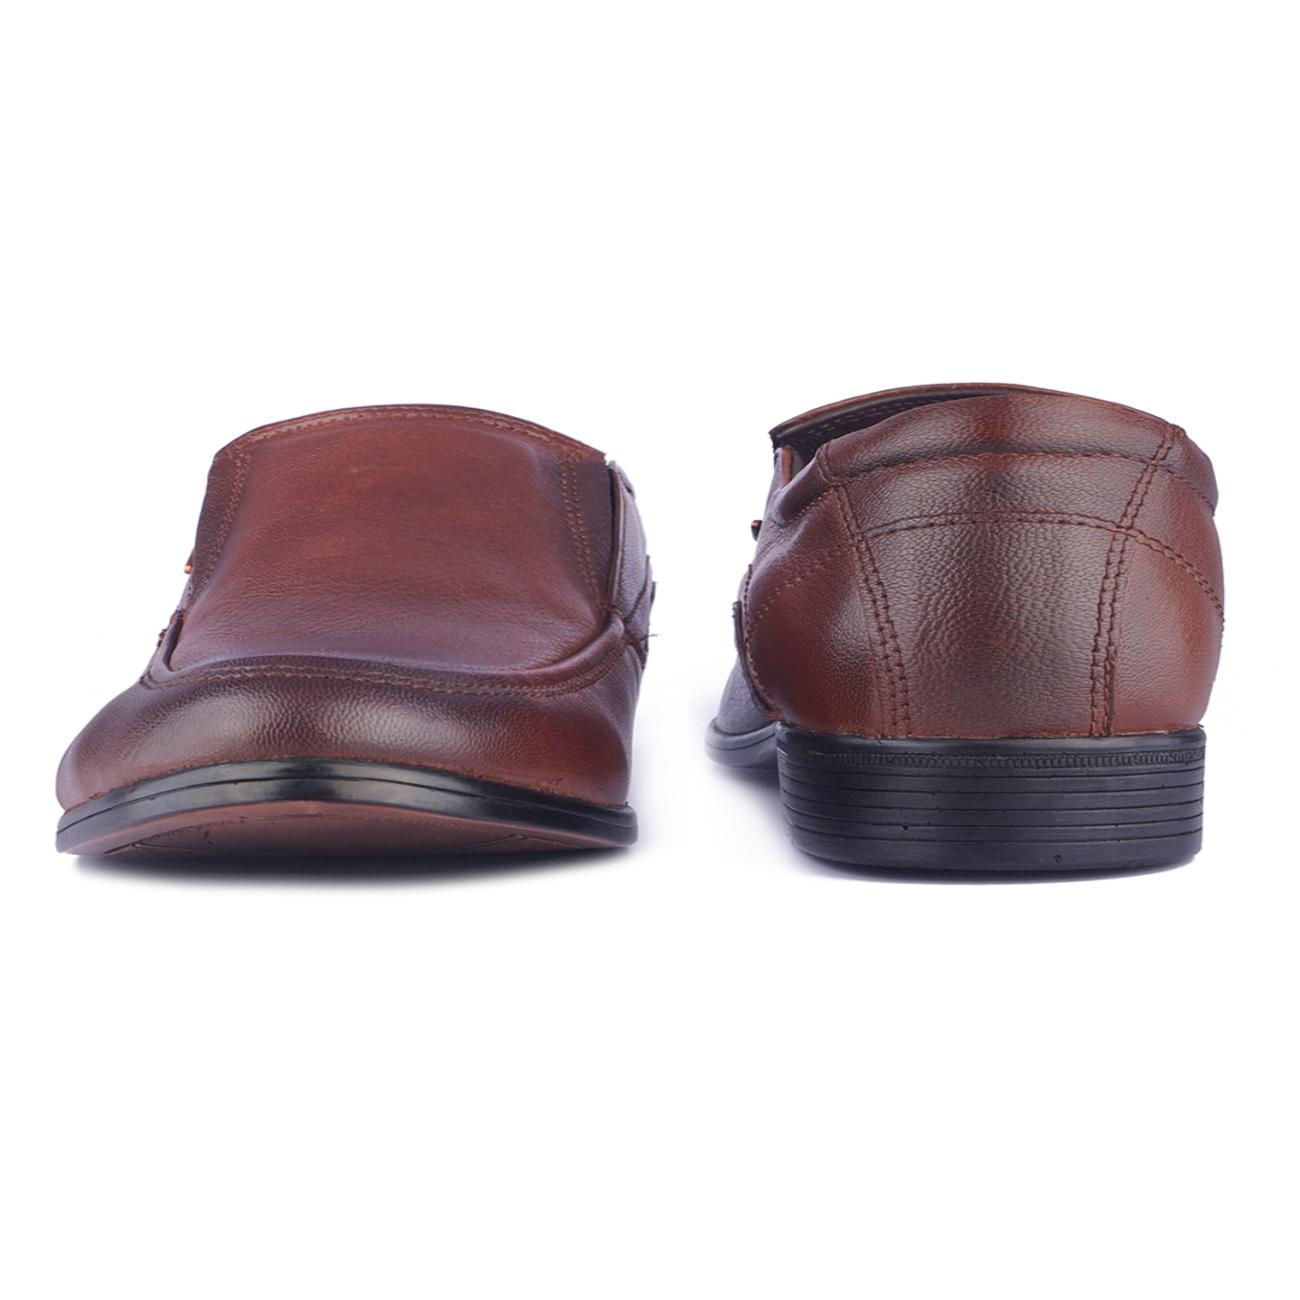 tan leather slip-on formal shoes from behind